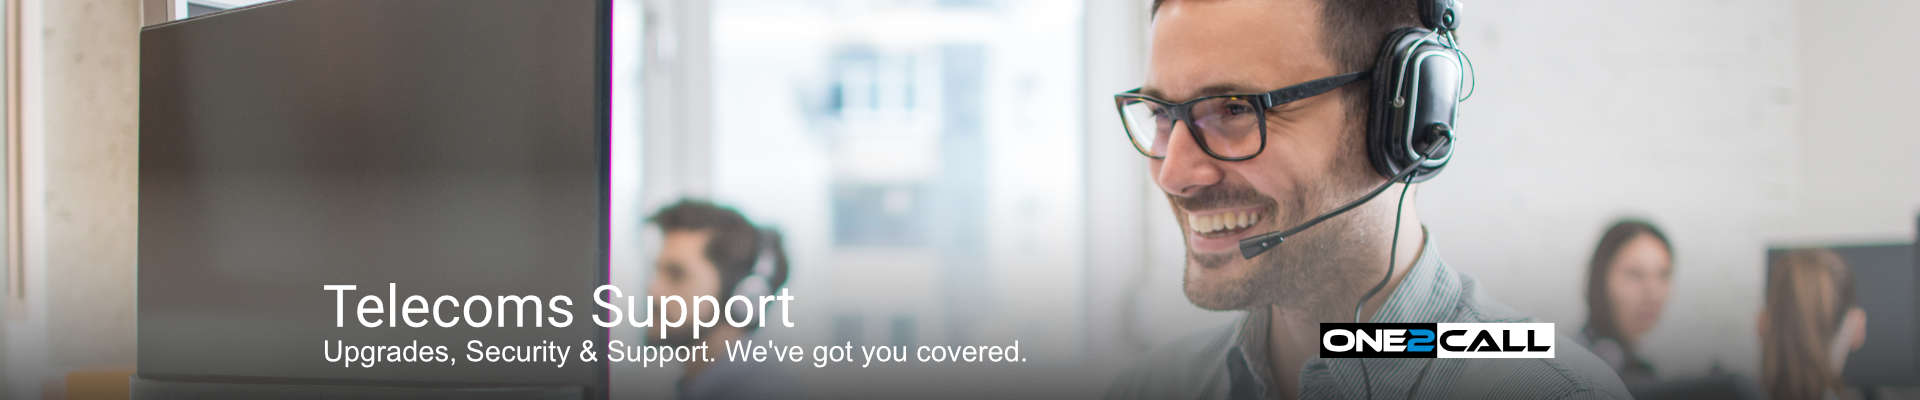 Telecoms Support - Upgrades, Security & Support. We've got you covered.